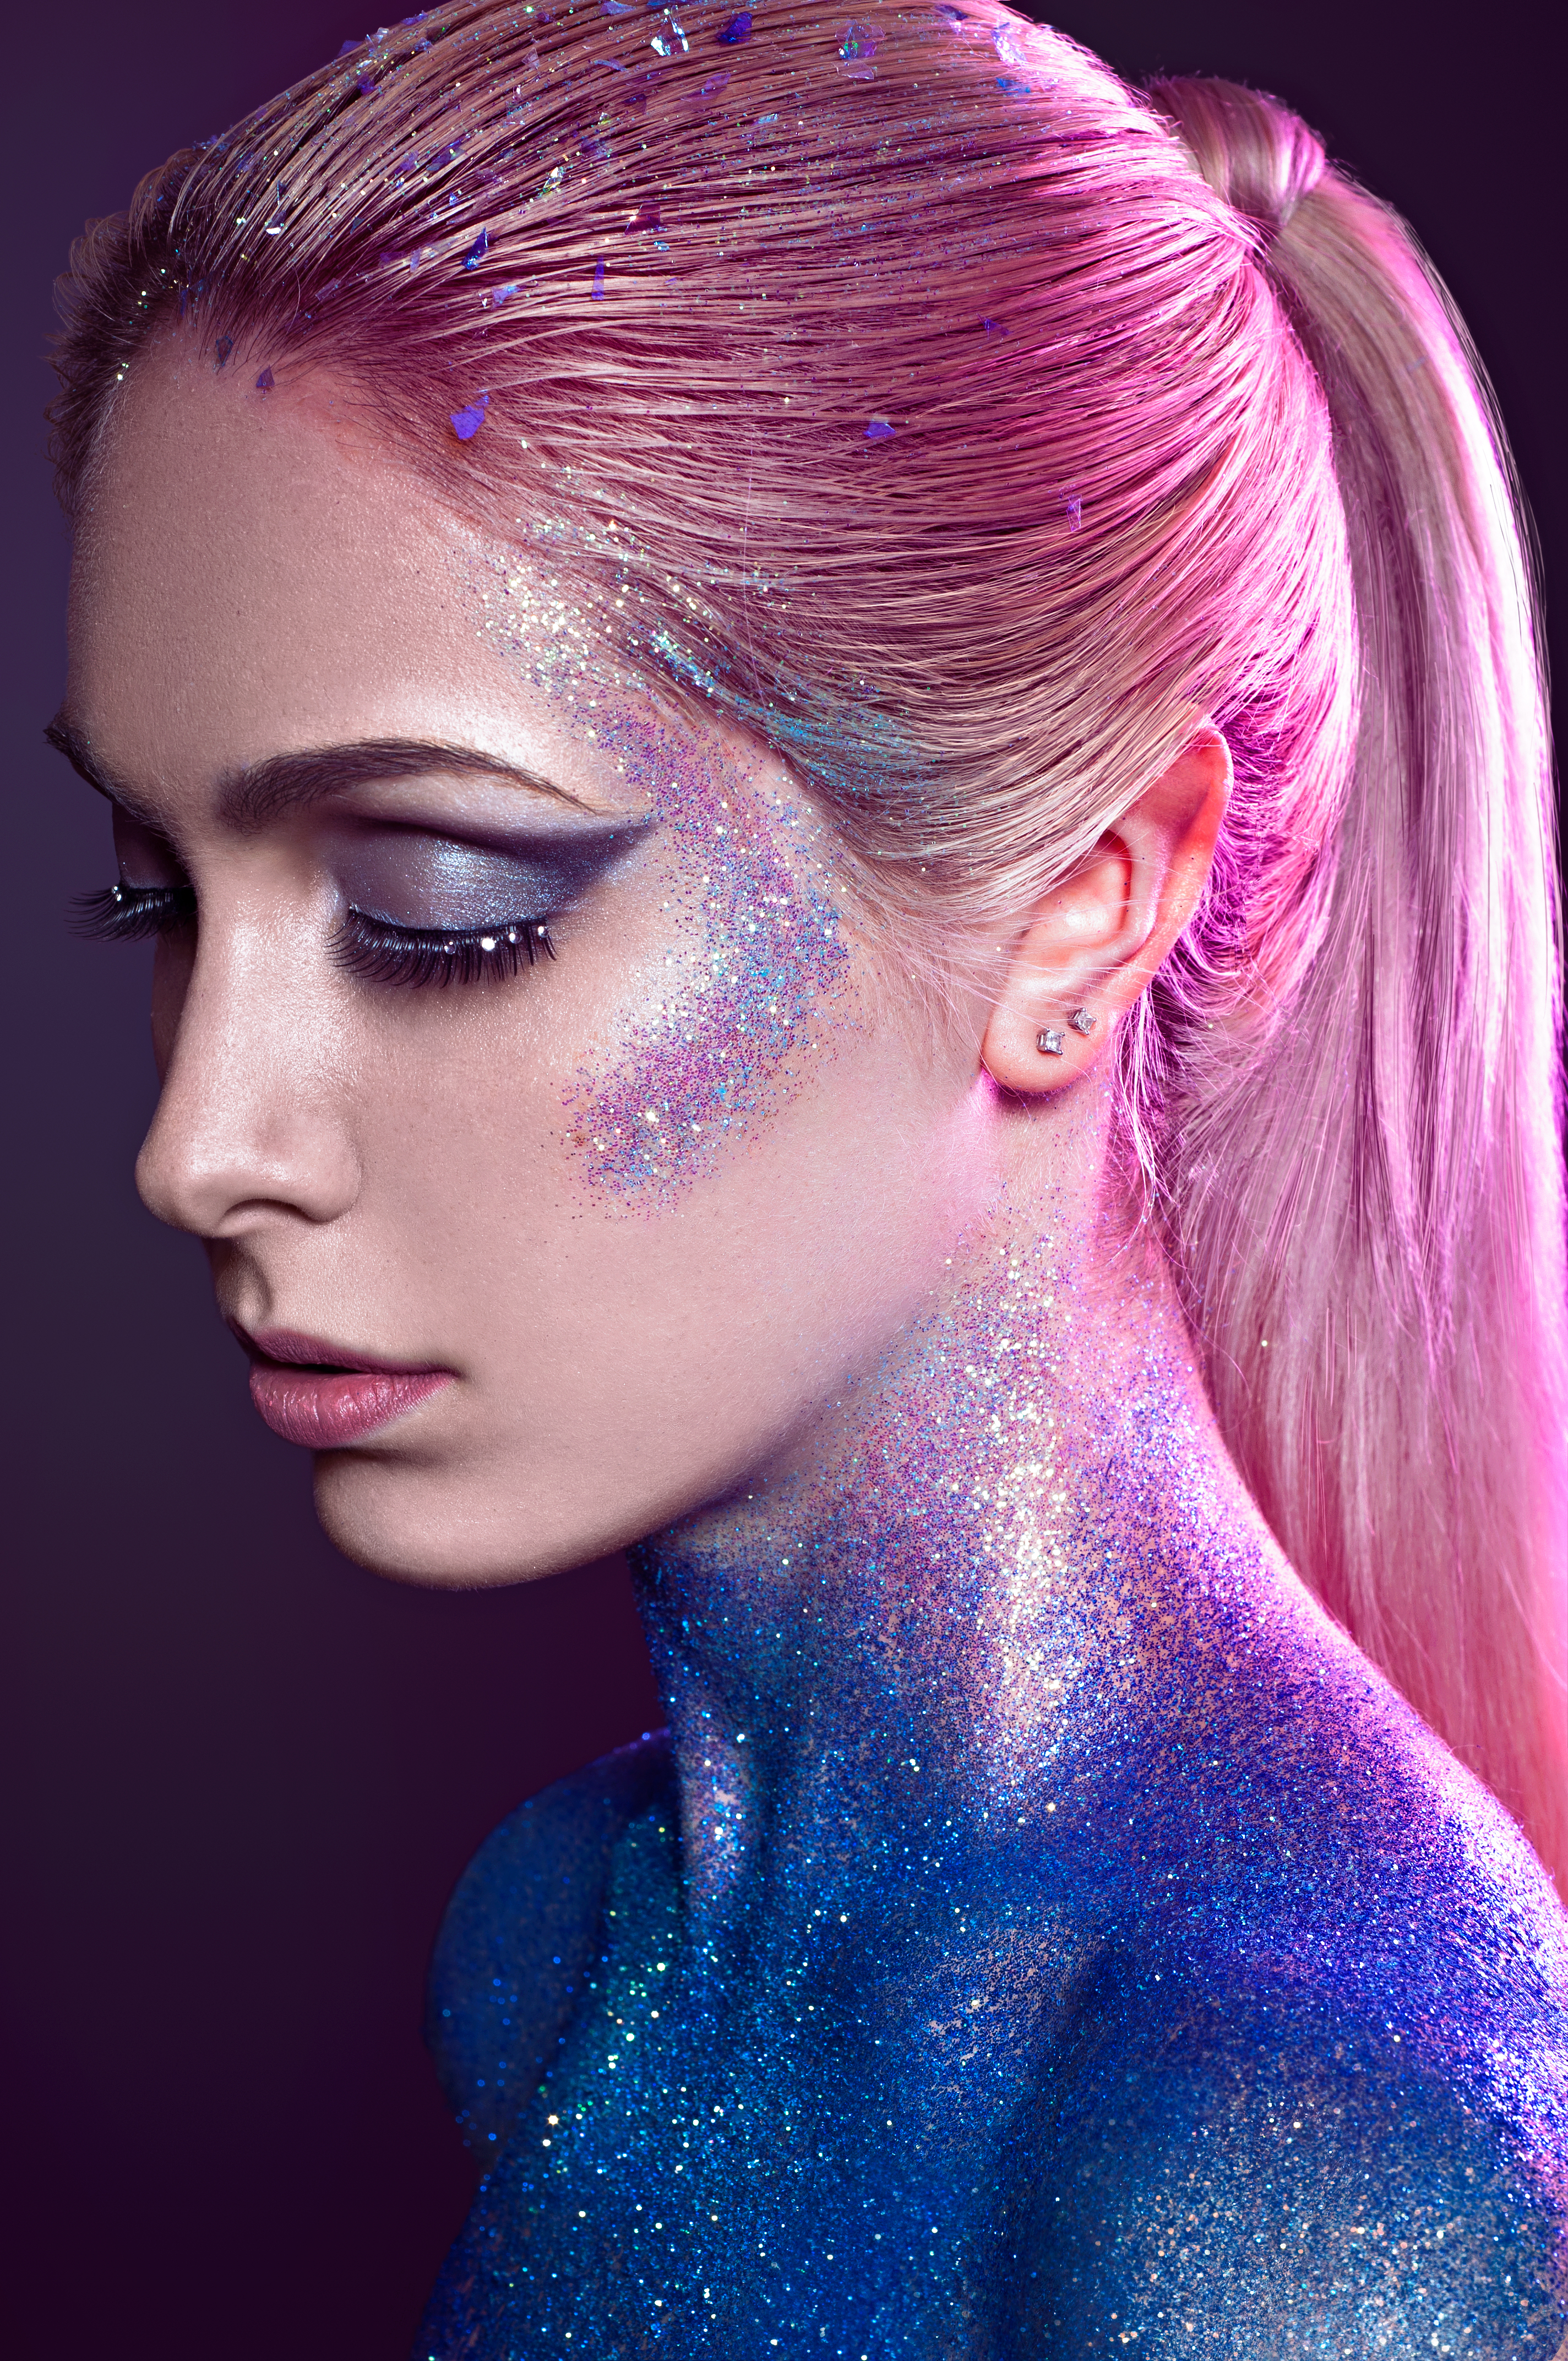 Laura Bello (Ariadnephotography) - Julia Icone - makeup:styling by photographer